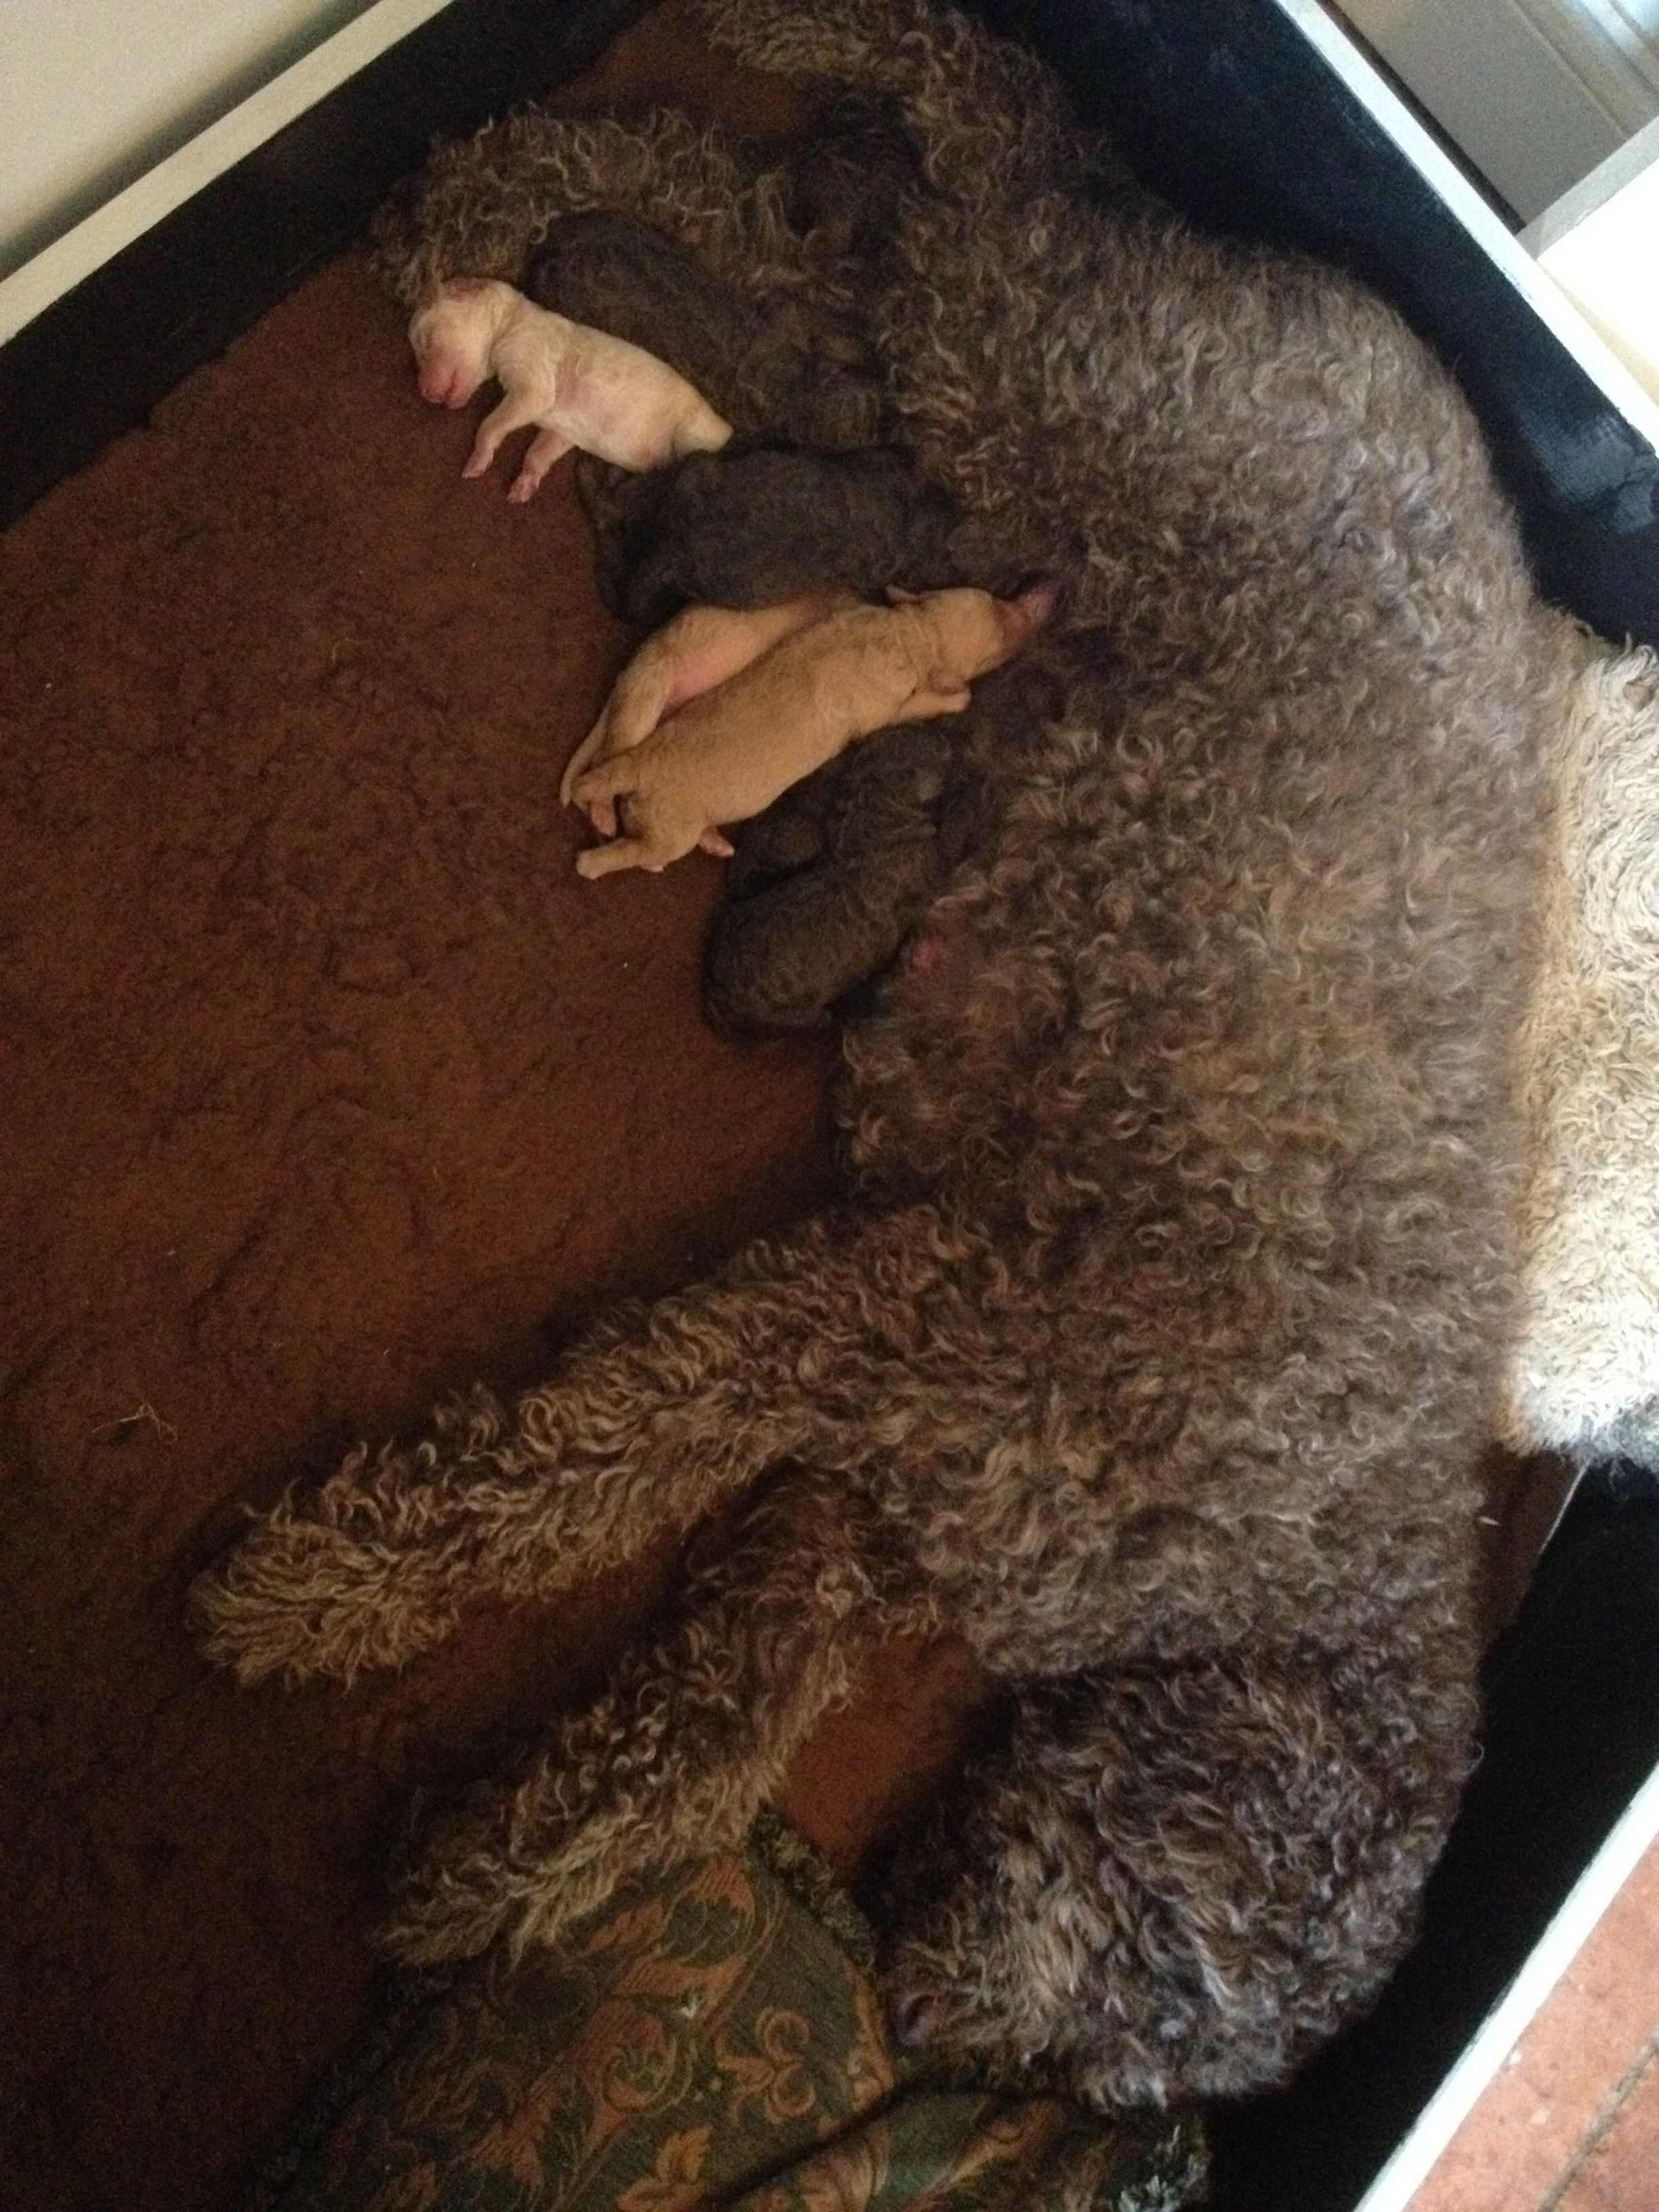 Ebony and her puppies